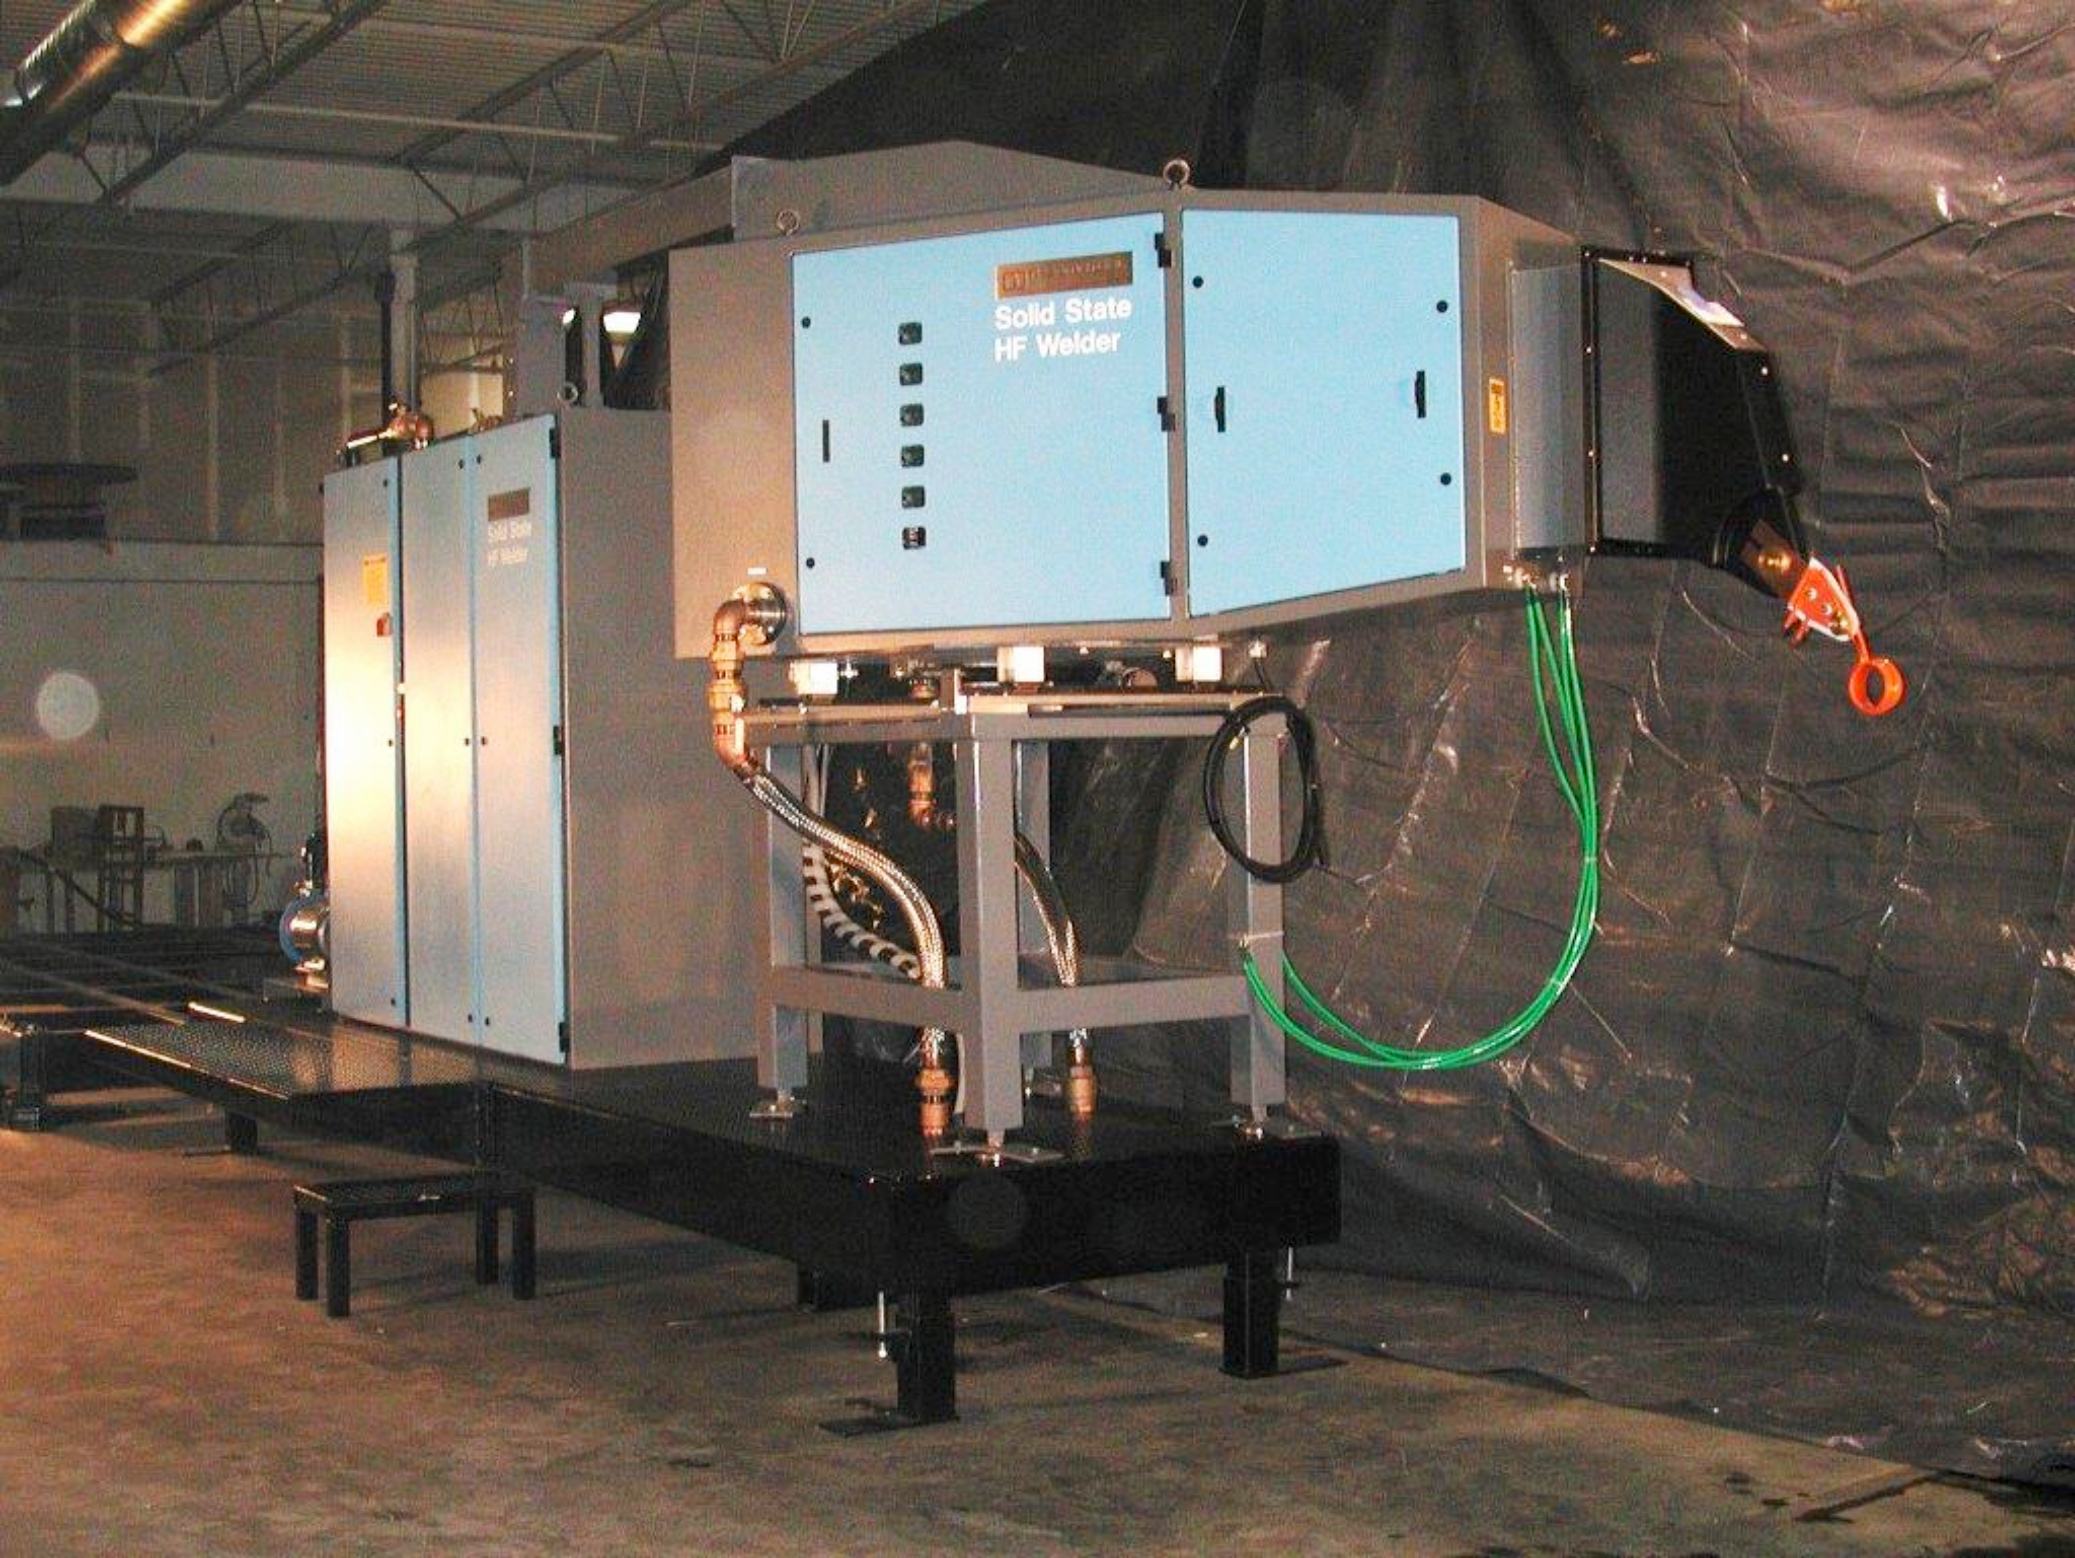 Thermatool CFI HF Welder Pre-assembled for drop in installation on customer site_Visteon complete